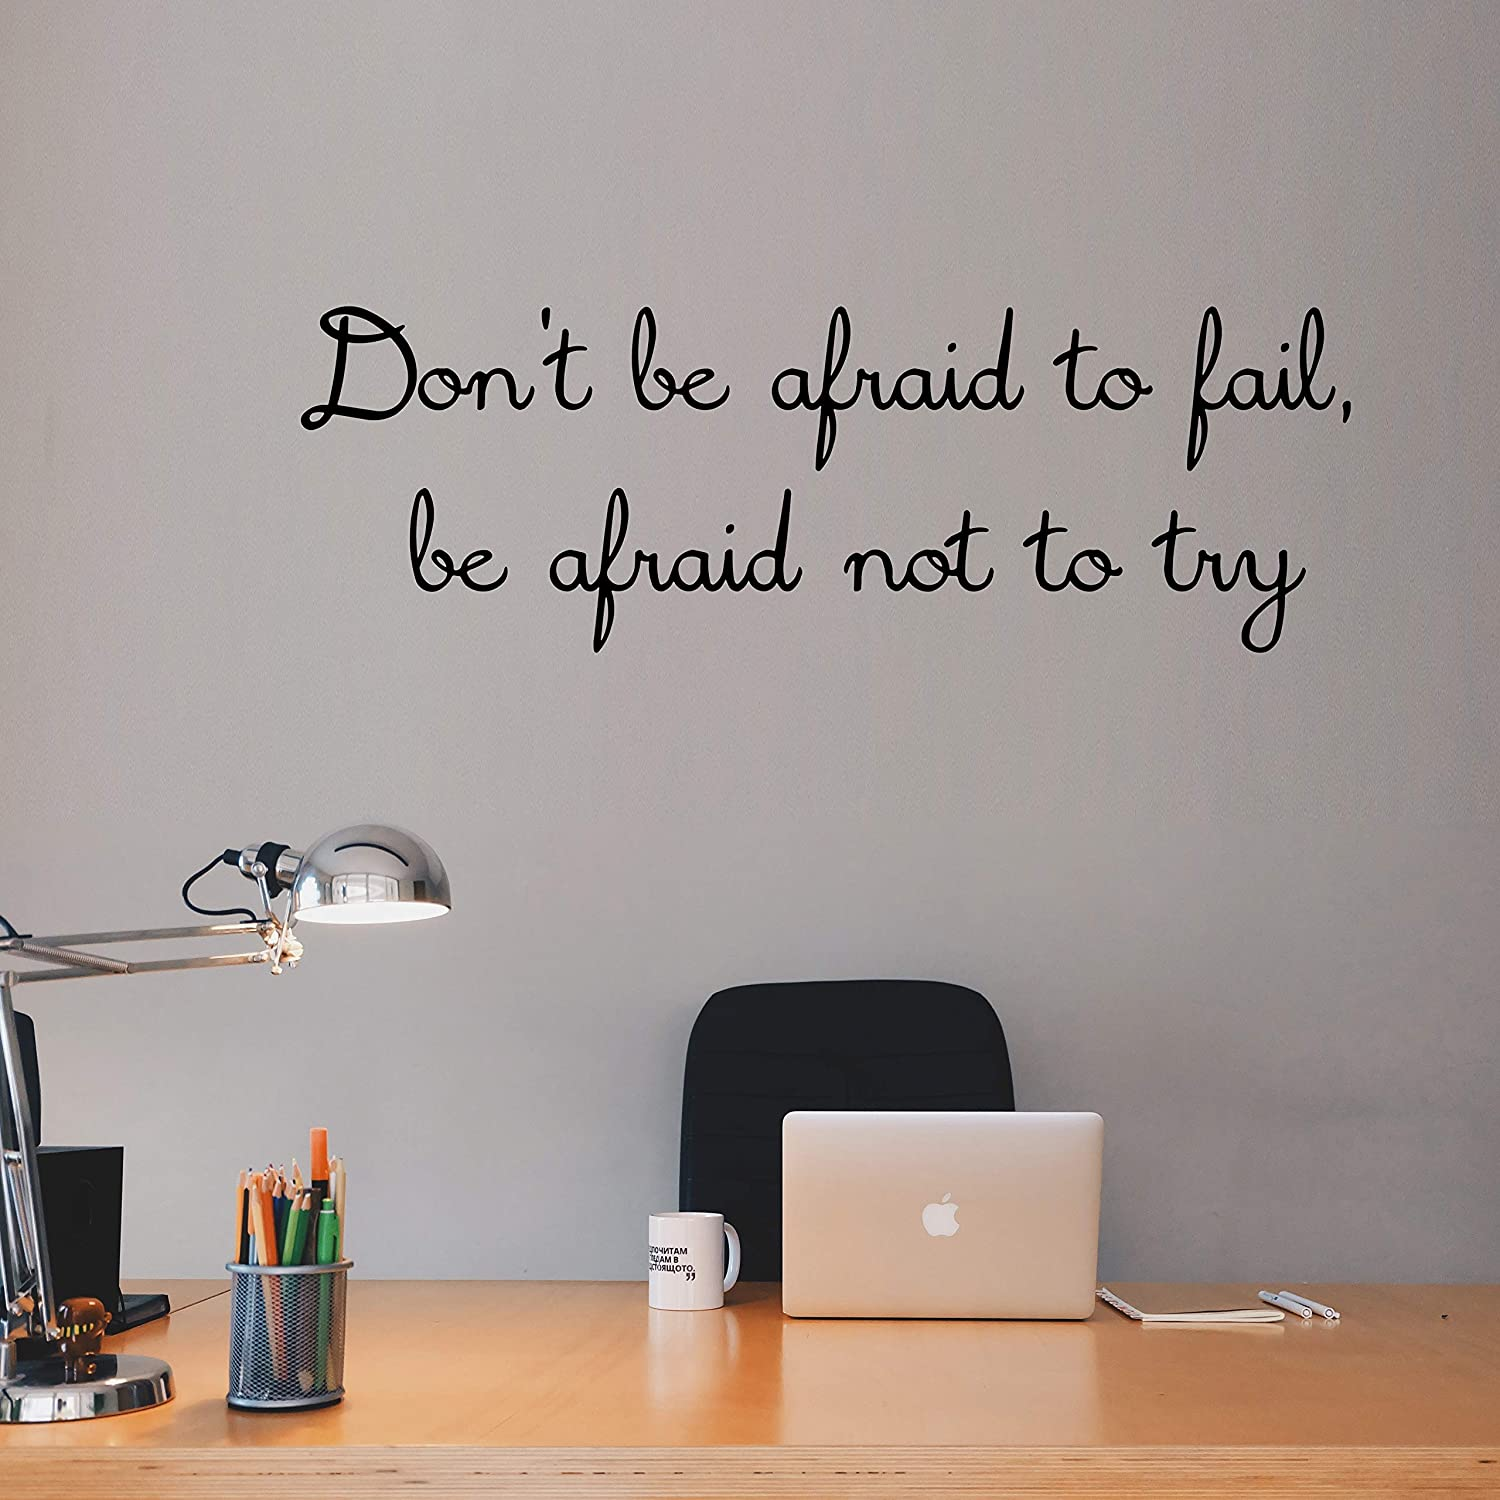 VWAQ Dont Be Afraid to Fail Be Afraid Not to Try Vinyl Wall Decal Inspiring Quotes Motivational Decor